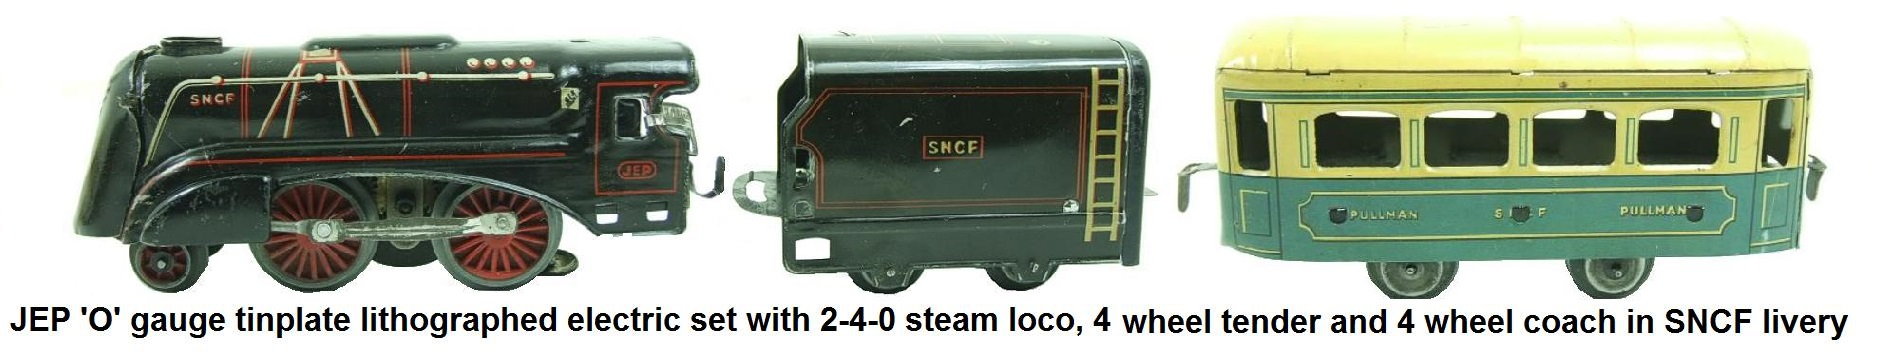 JEP 'O' gauge lithographed tin, 2-4-0 electric steam locomotive, 4 wheel tender and 4 wheel pullman in SNCF livery